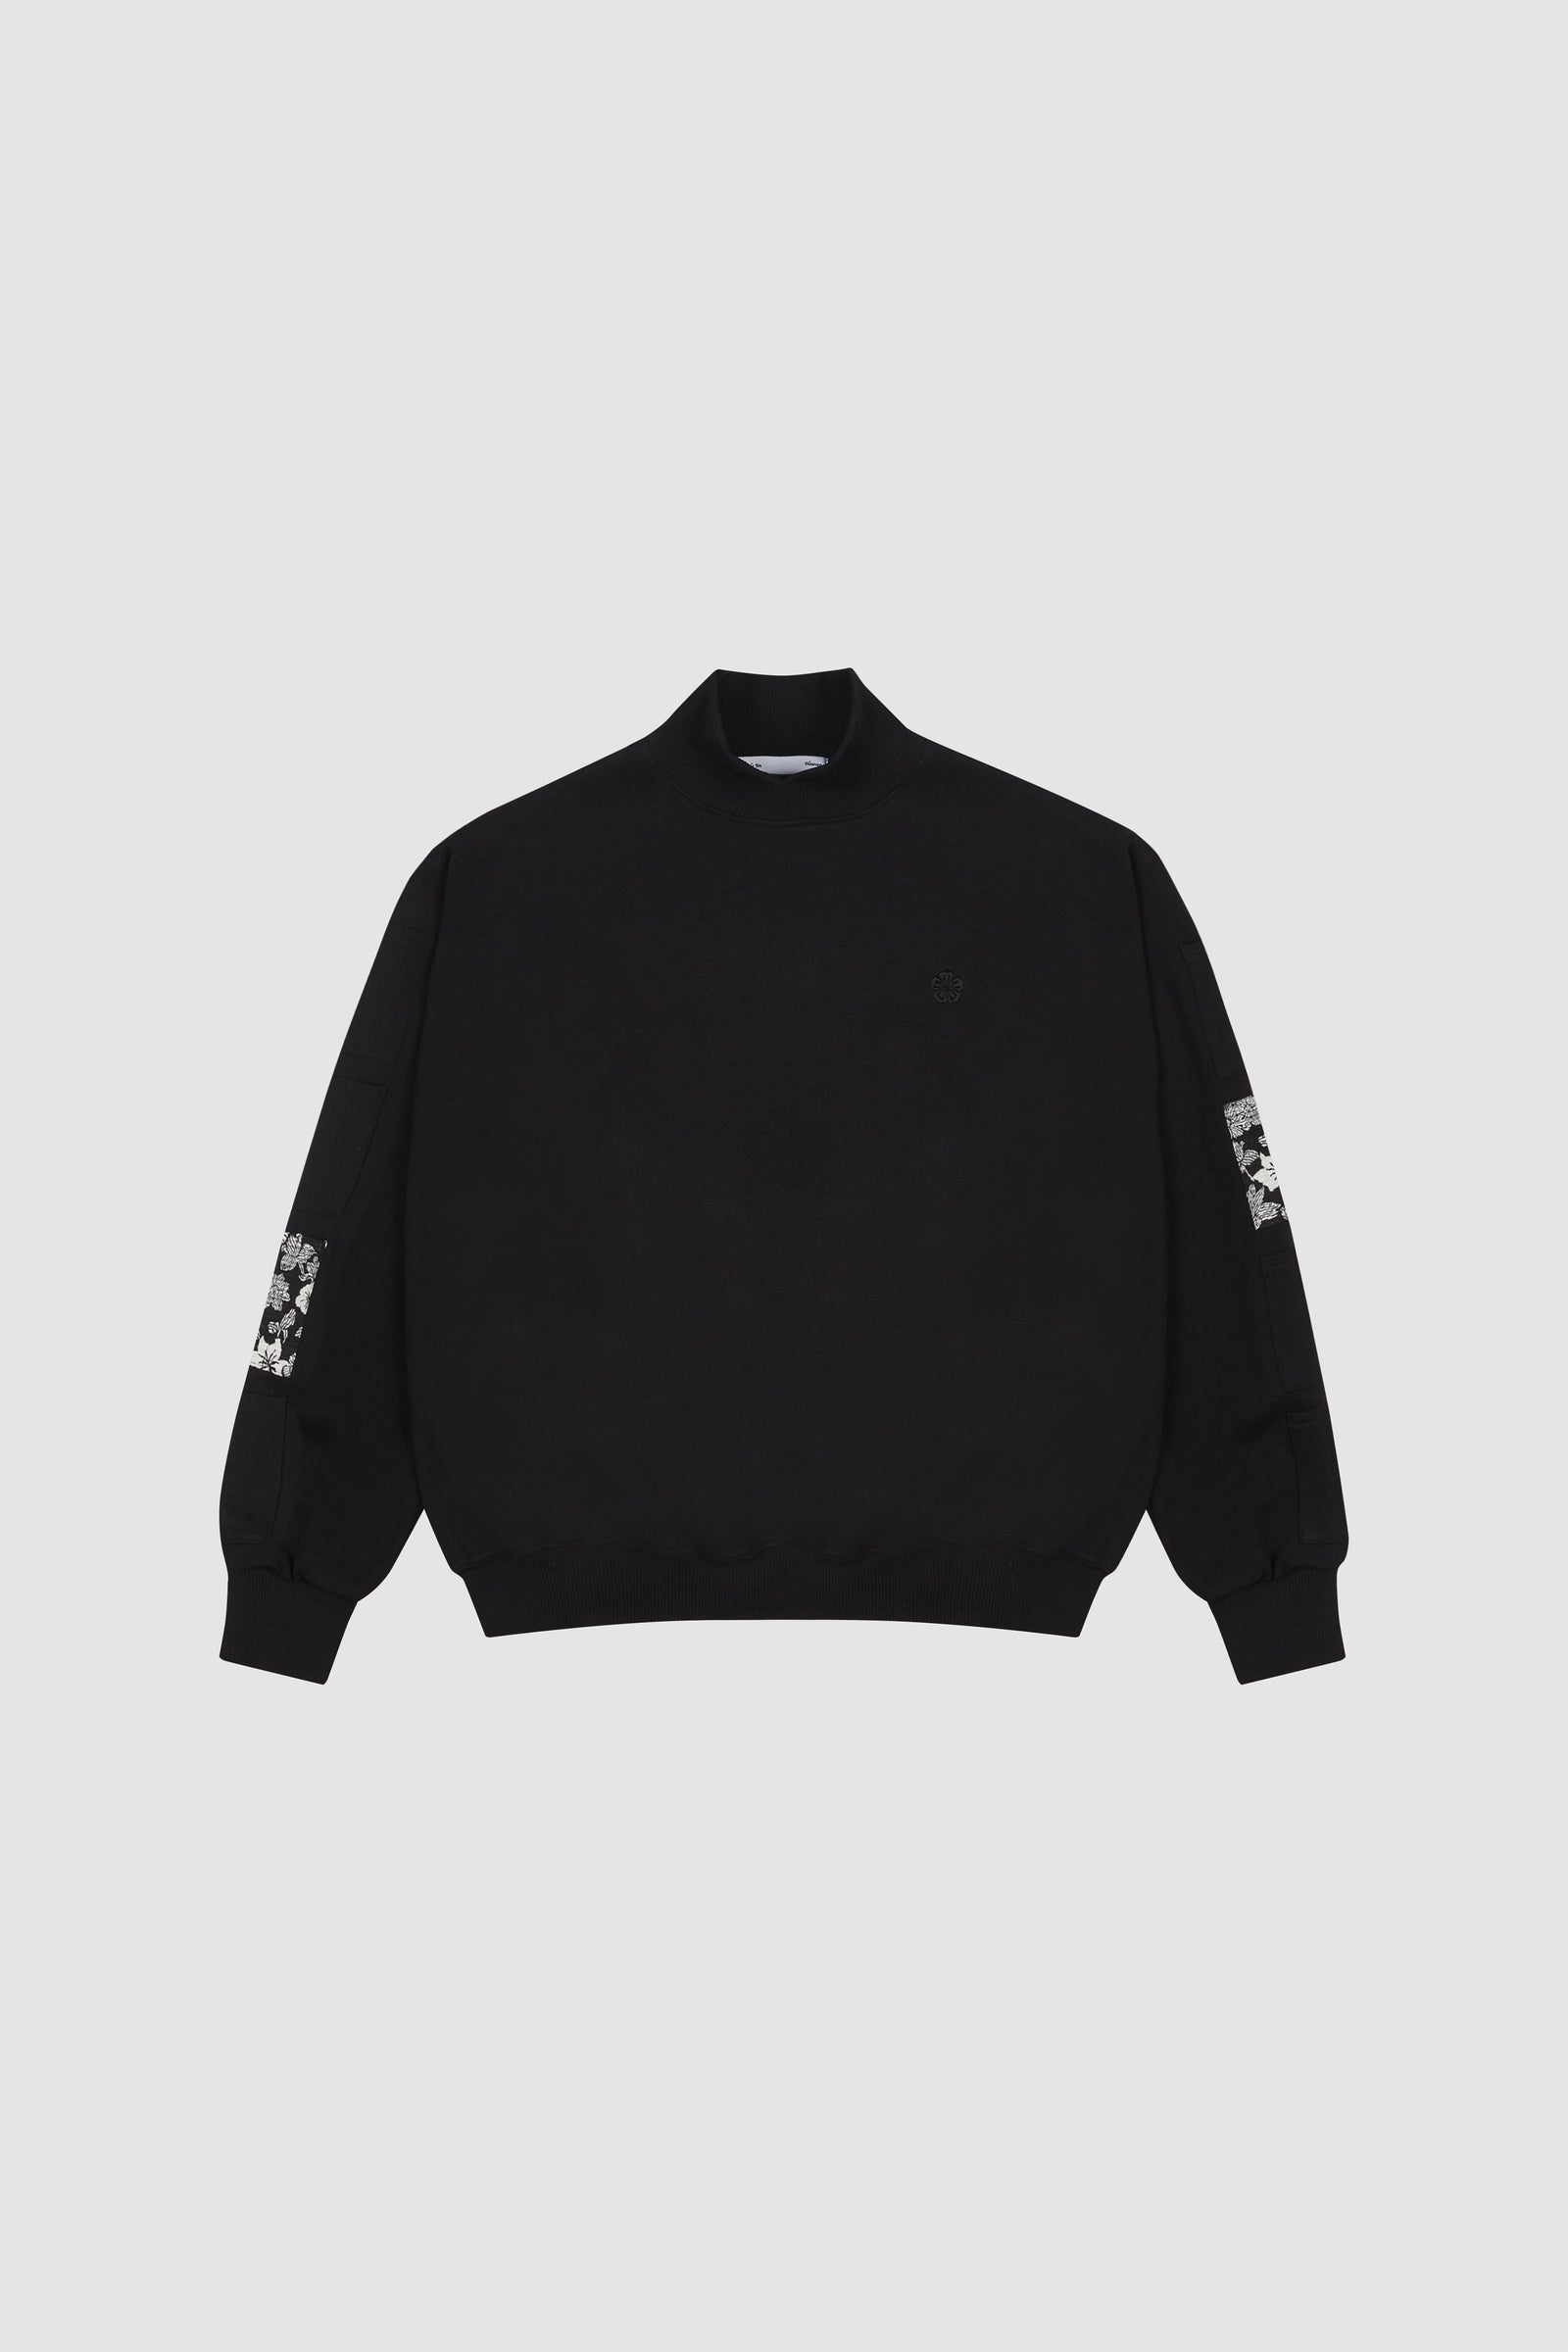 Black Aloha Mock Neck Sweatshirt